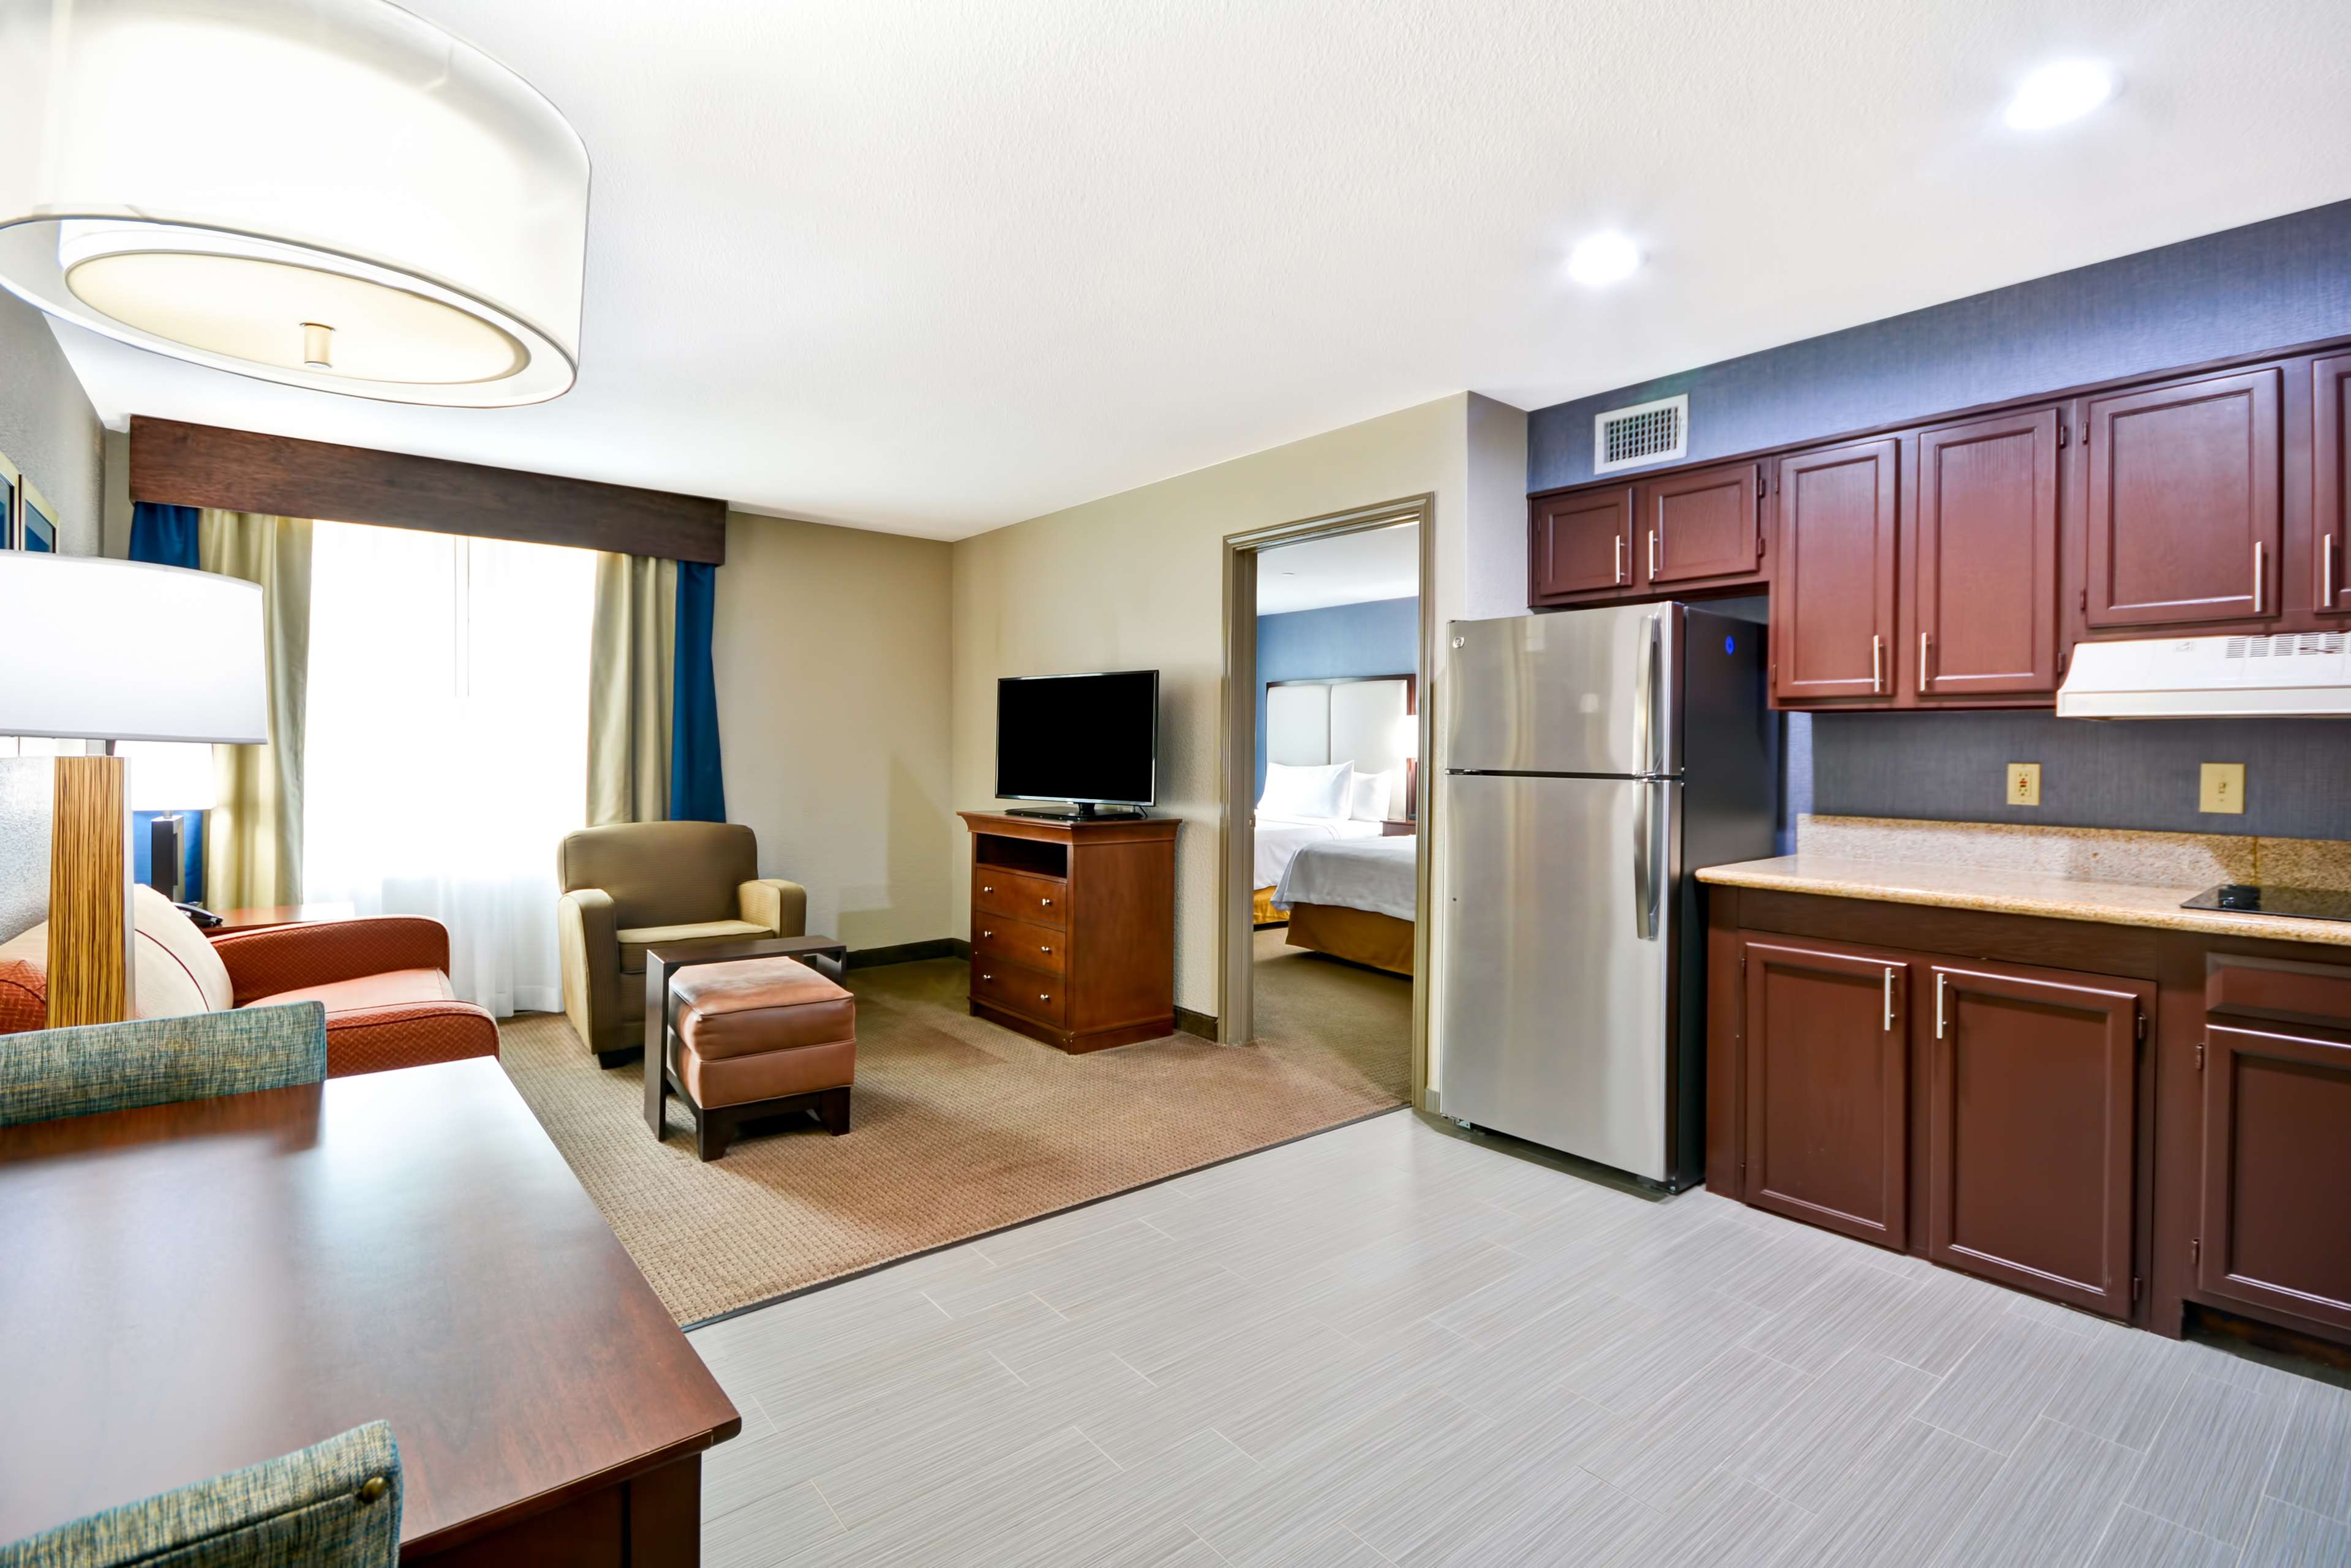 Homewood Suites by Hilton Dallas-Lewisville image 35